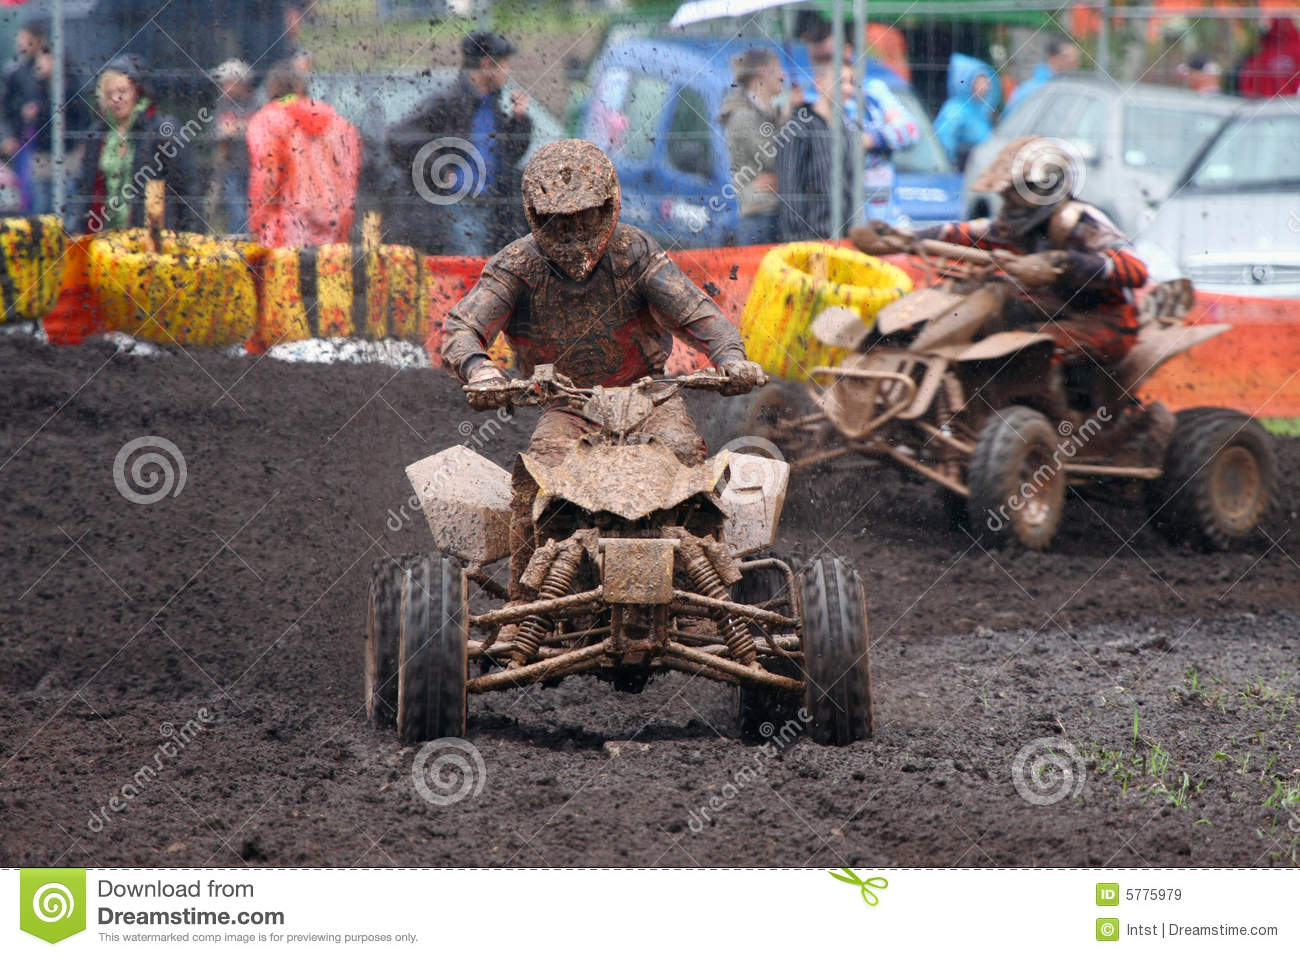 Quad Bike Racing In Dirt And Mud Royalty Free Stock Images